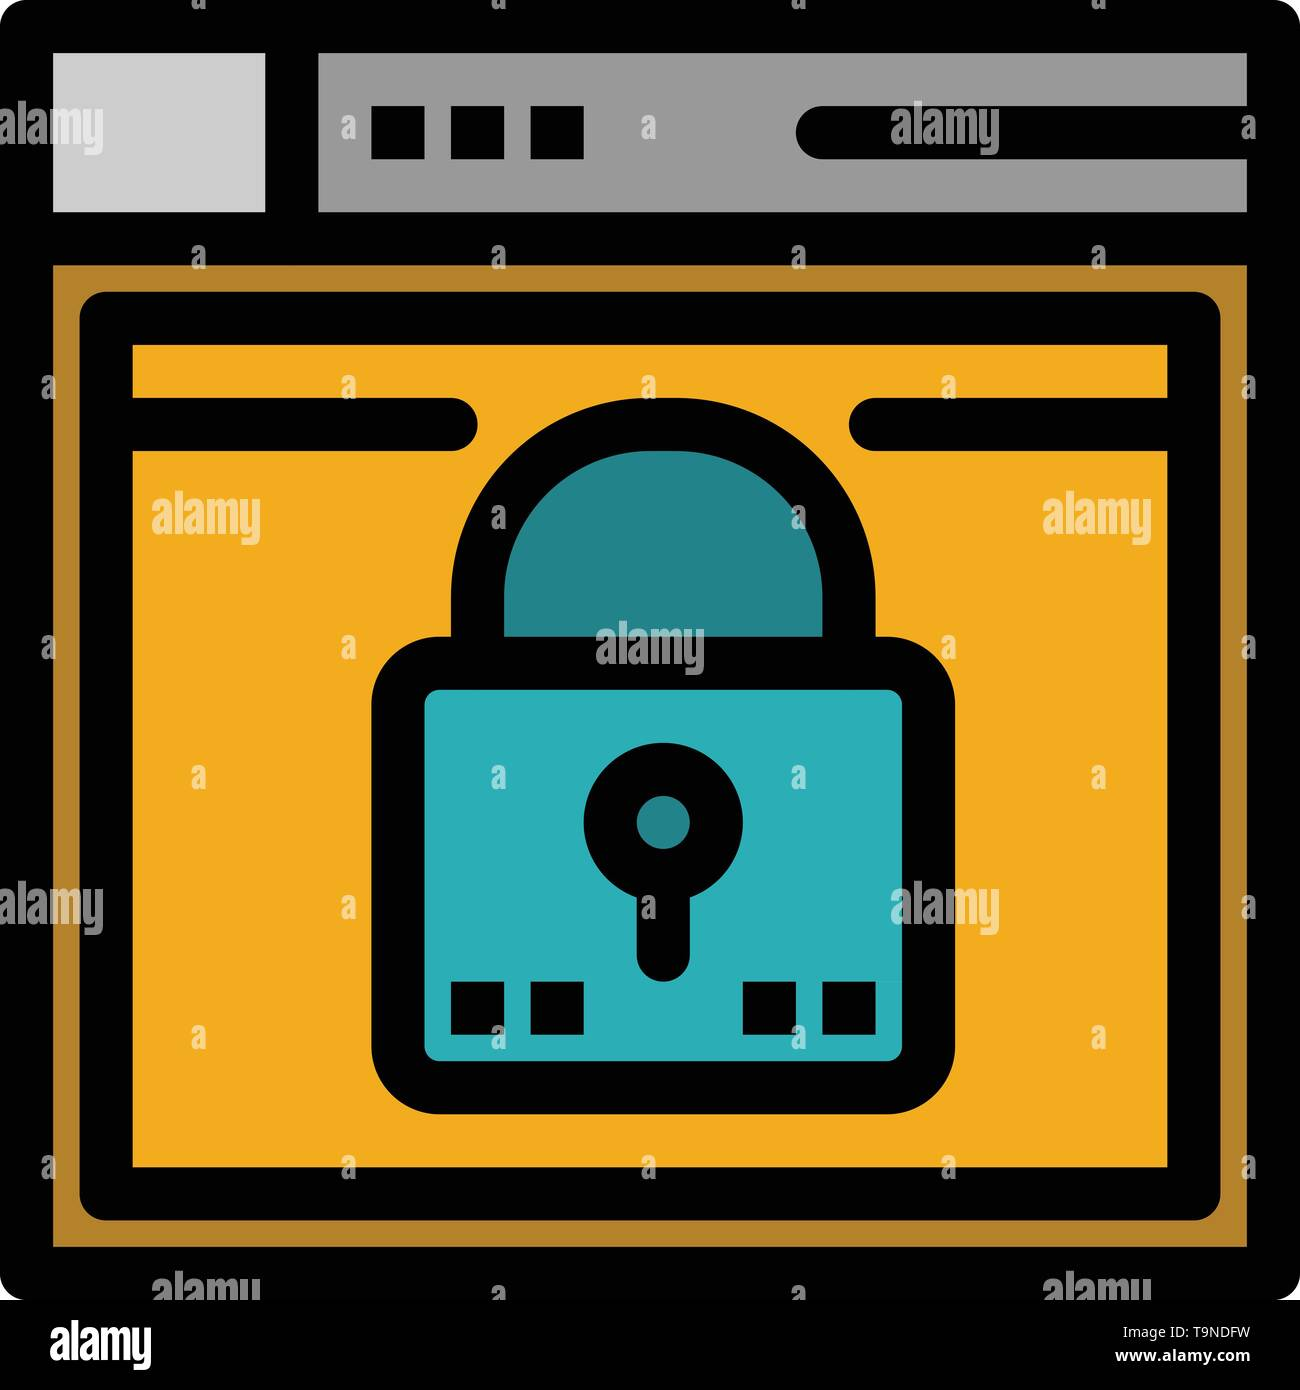 Login, Secure, Web, Layout, Password, Lock Flat Color Icon